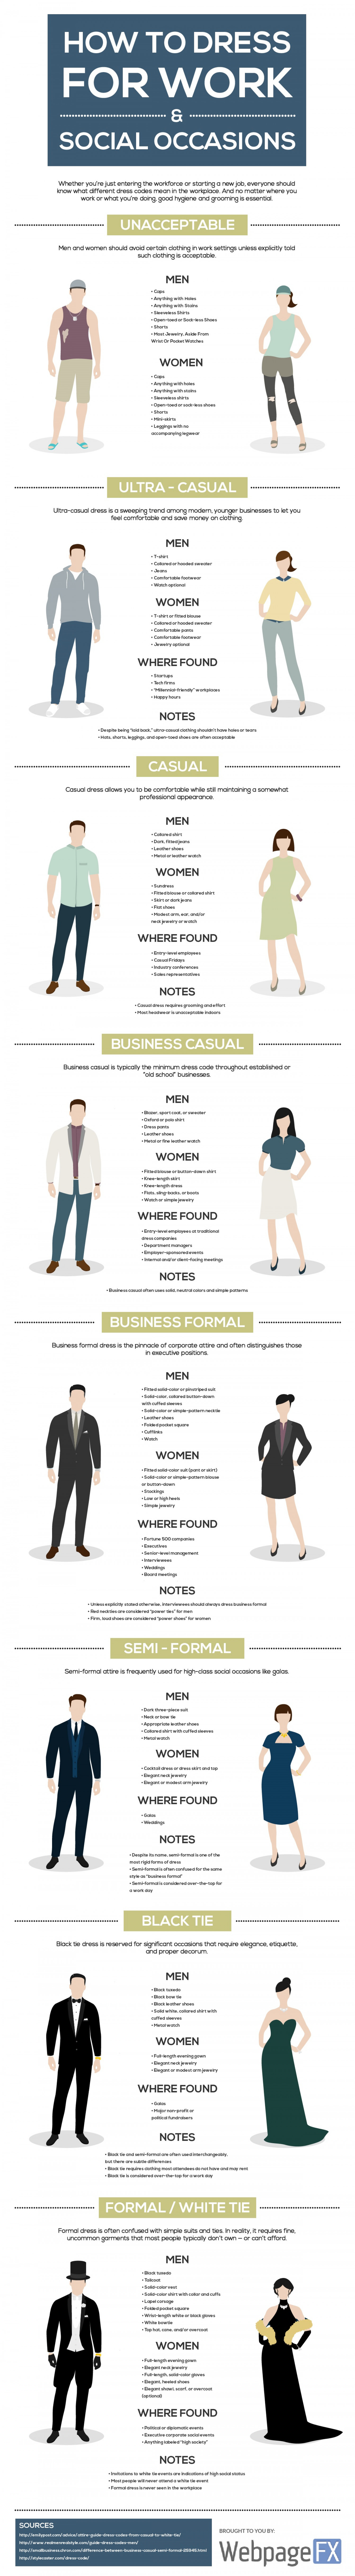 Dress Code Cheat Sheet for Work & Social Occasions Infographic